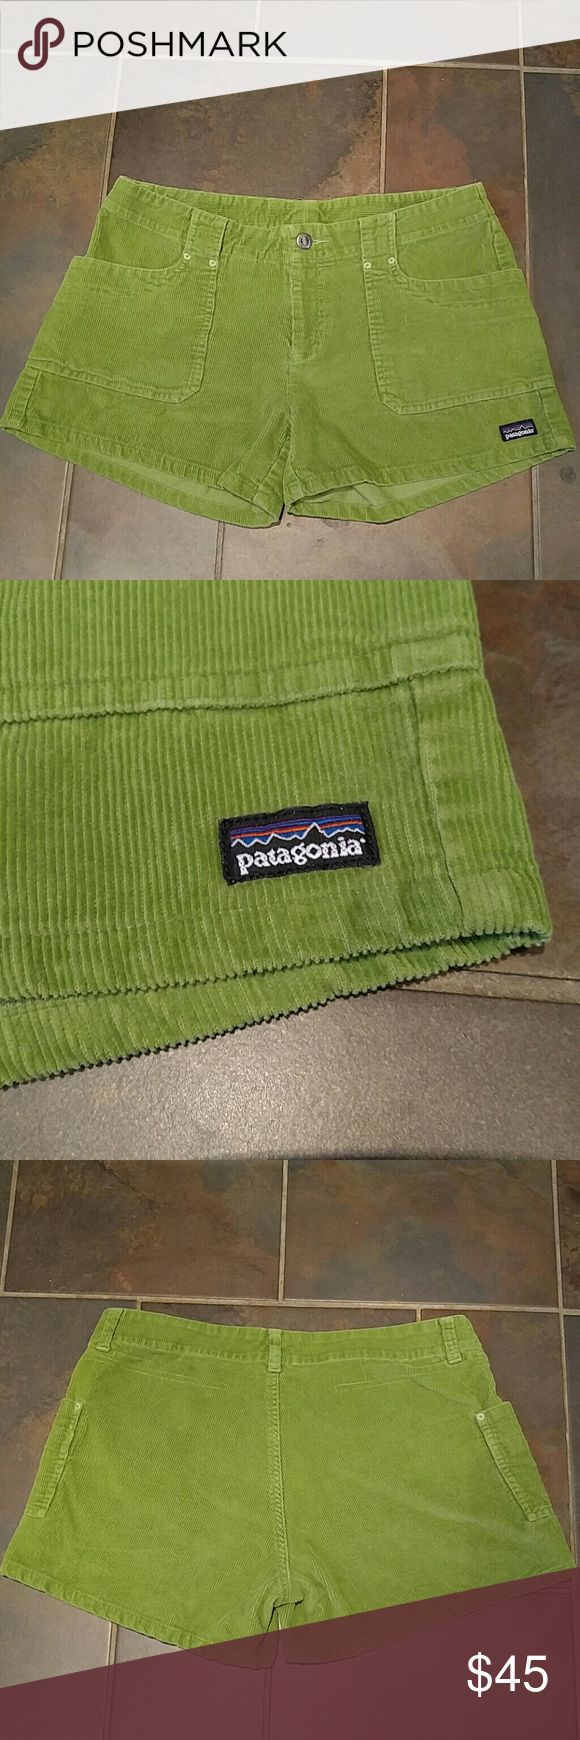 Vintage Patagonia Corduroy Shorts Green Patagonia shorts with lathe pockets, belt loops and zipper fly! Pre-loved but in great condition! Patagonia Shorts